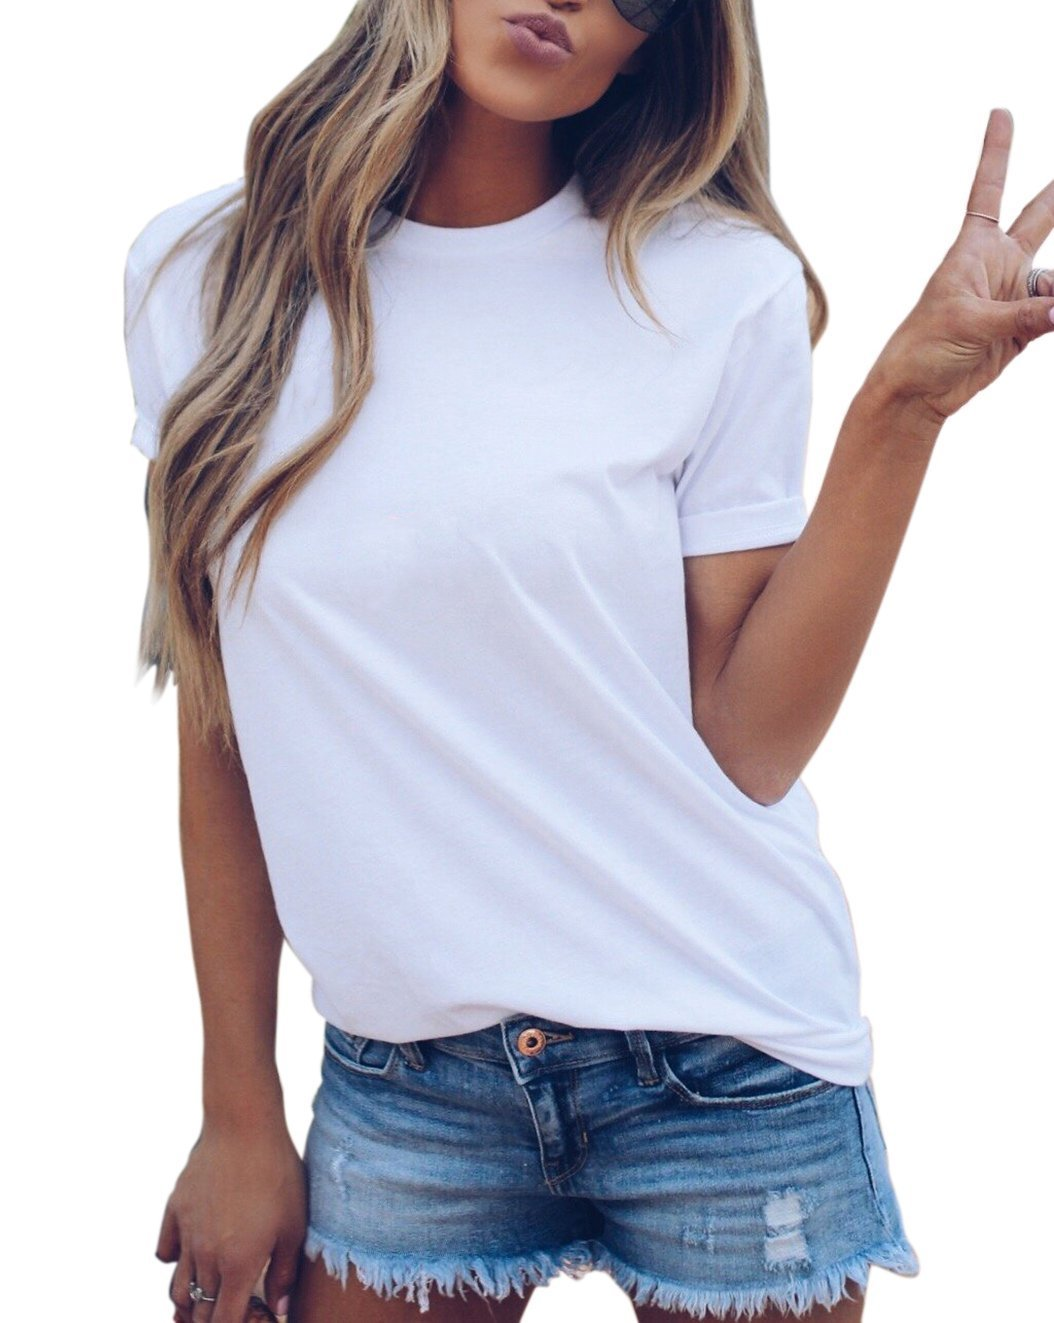 LOVFEE Women's Basic Solid Short Sleeve Loose Casual T-Shirts(O-Neck/White/M)